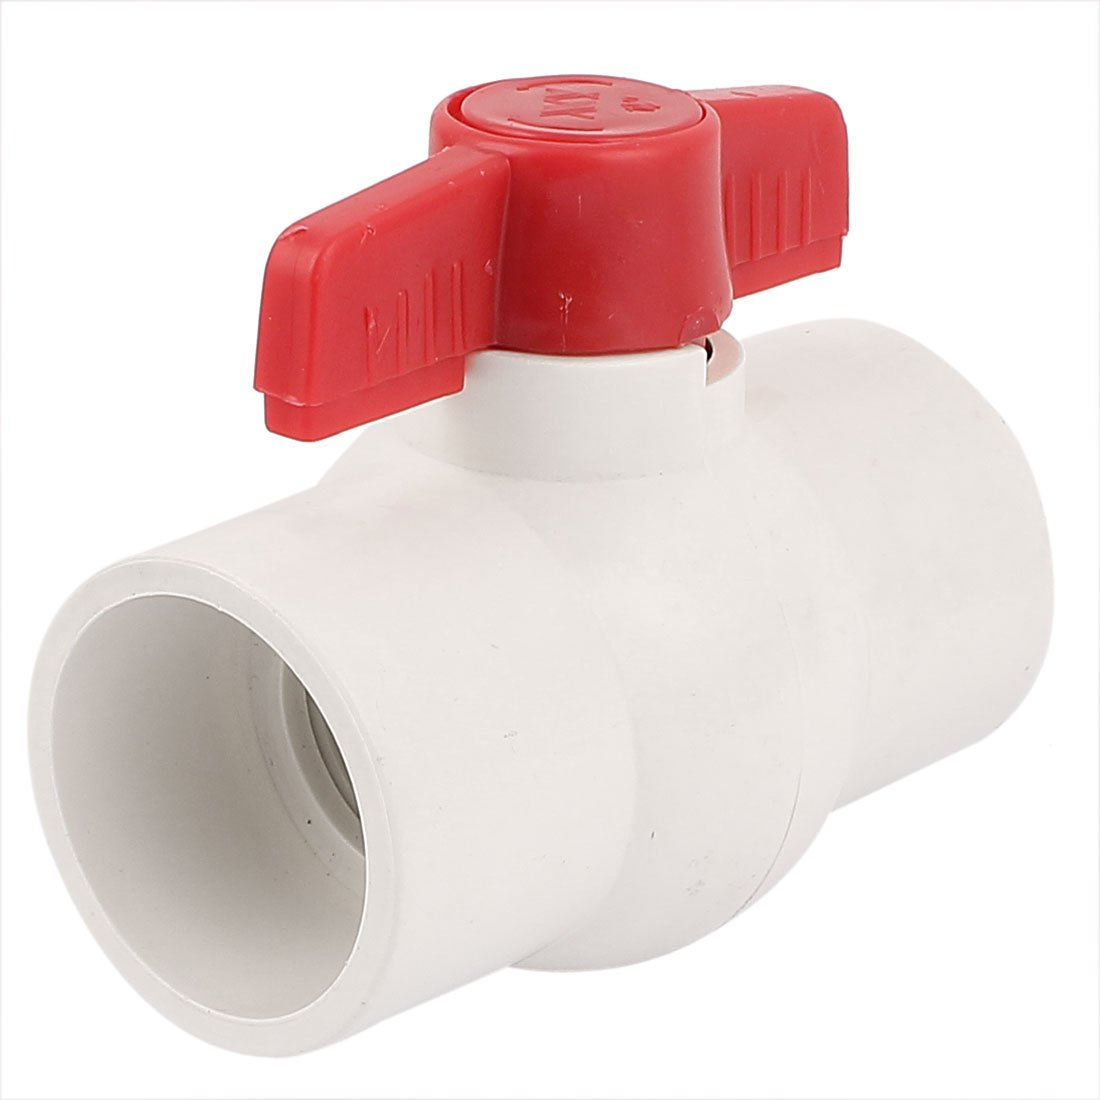 sourcingmap® 50MM/2' Dias Slip Ends Water Control PVC Ball Valve White Red a15111100ux0050